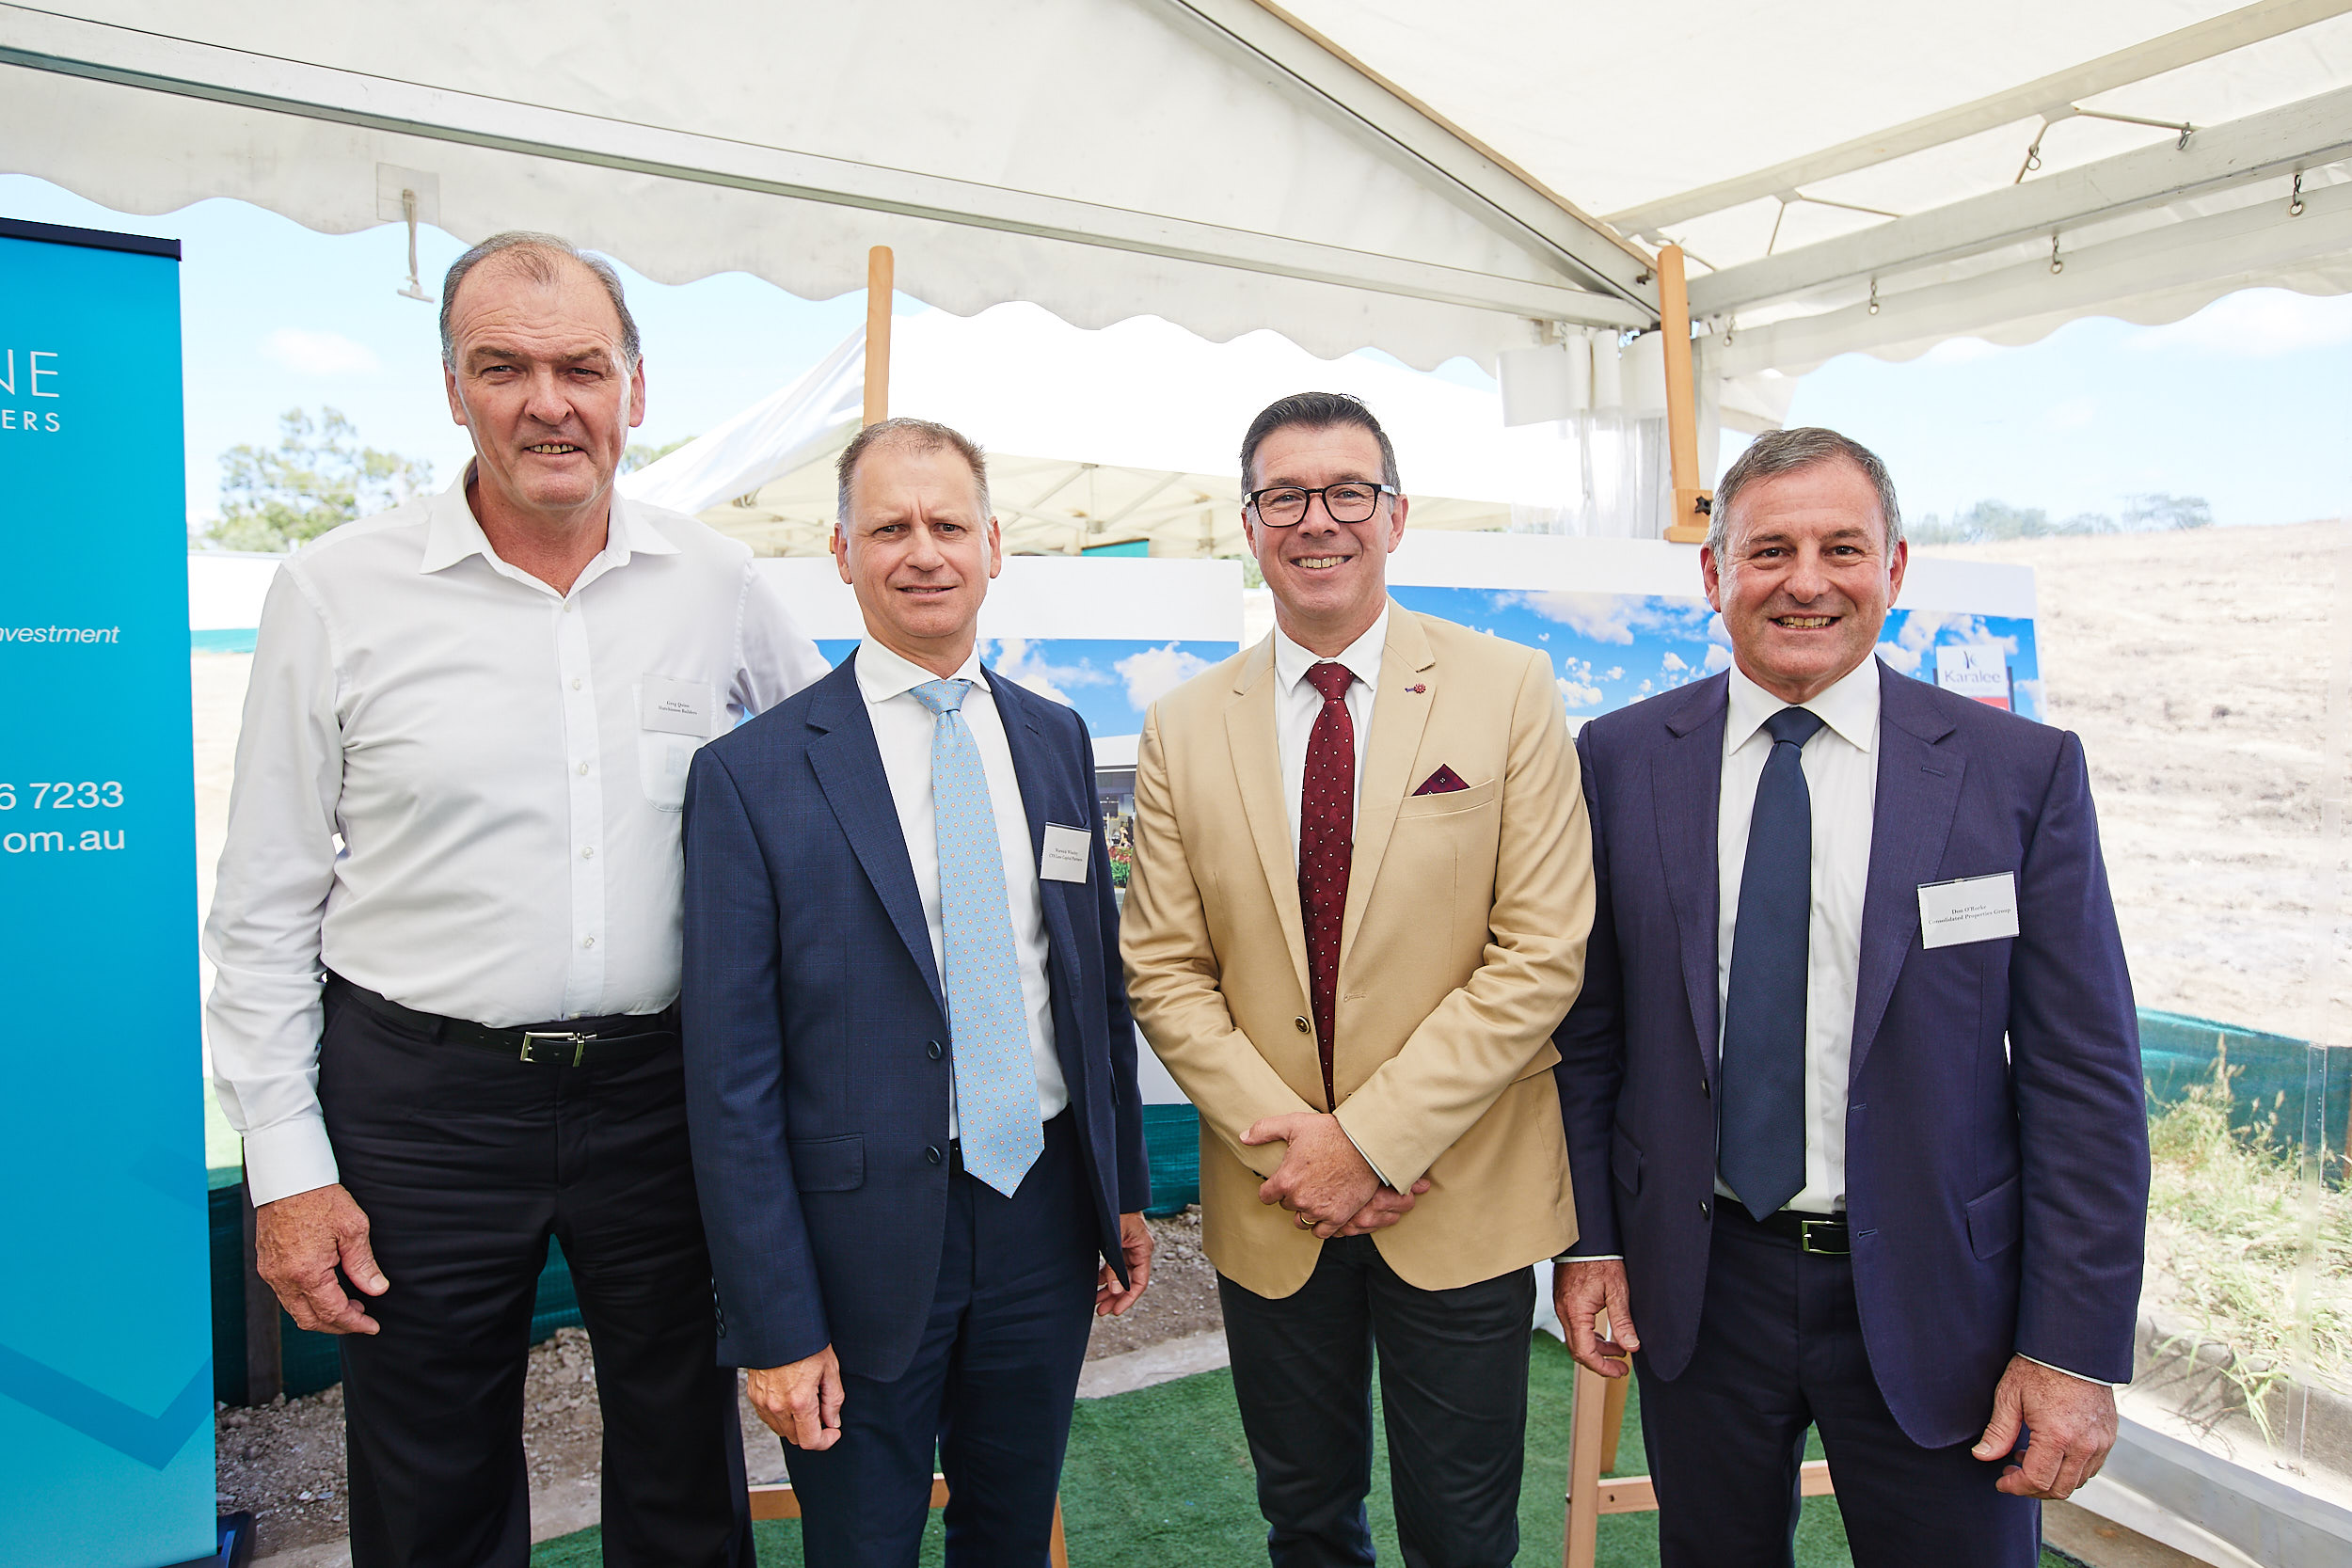 Construction on the Karalee Shopping Centre kicked off on Monday. Pictured (L-R): Managing Director at Hutchinson Builders Greg Quinn, Director Asset Management and Execution at CBS Lane Capital Partners Warwick Whatley, Ipswich Mayor Cr Andrew Antoniolli and Executive Chairman at Consolidated Properties Don O'Rorke.